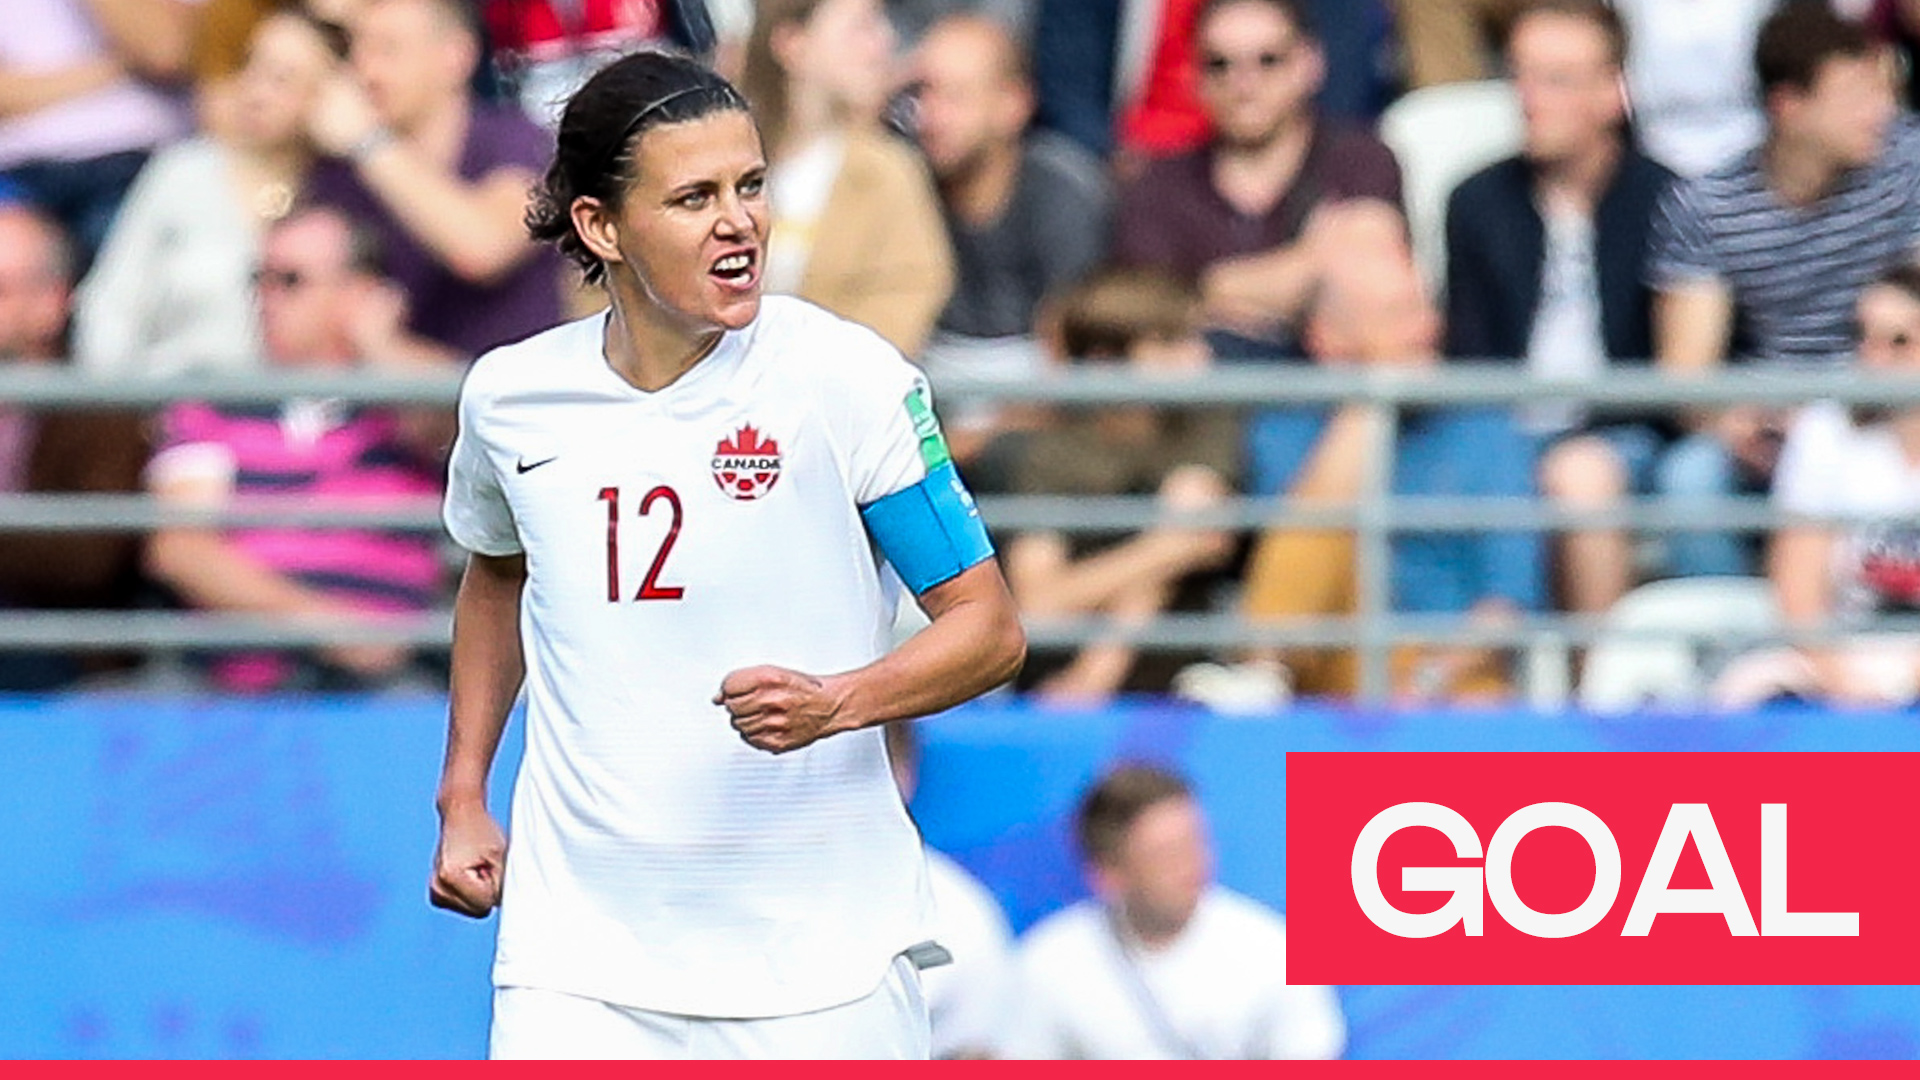 Women's World Cup 2019: Christine Sinclair thunders in a goal to level the score for Canada